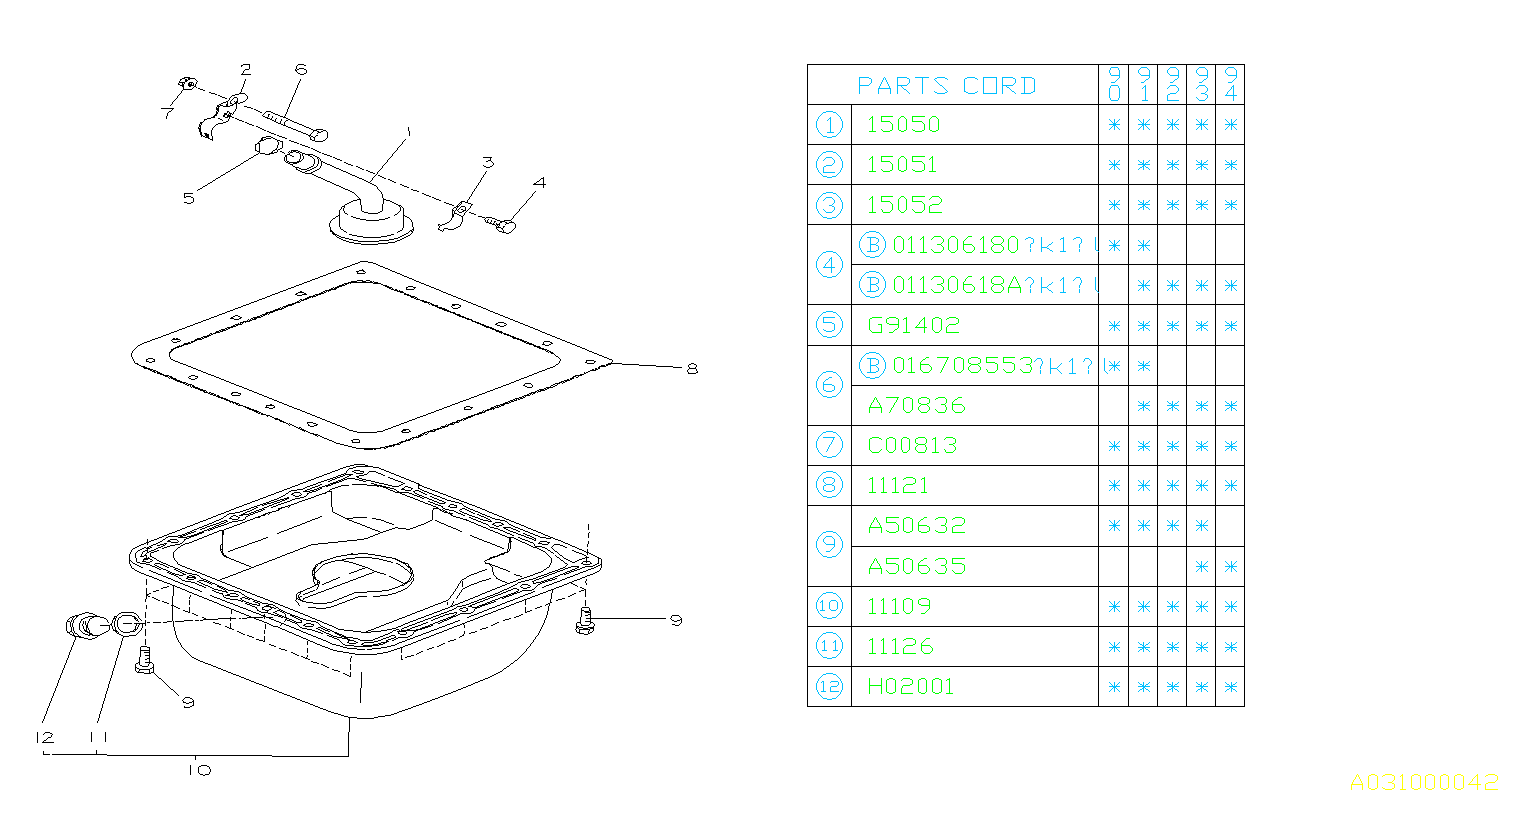 Subaru Loyale Engine Oil Pan Gasket -32  32- E   140975-